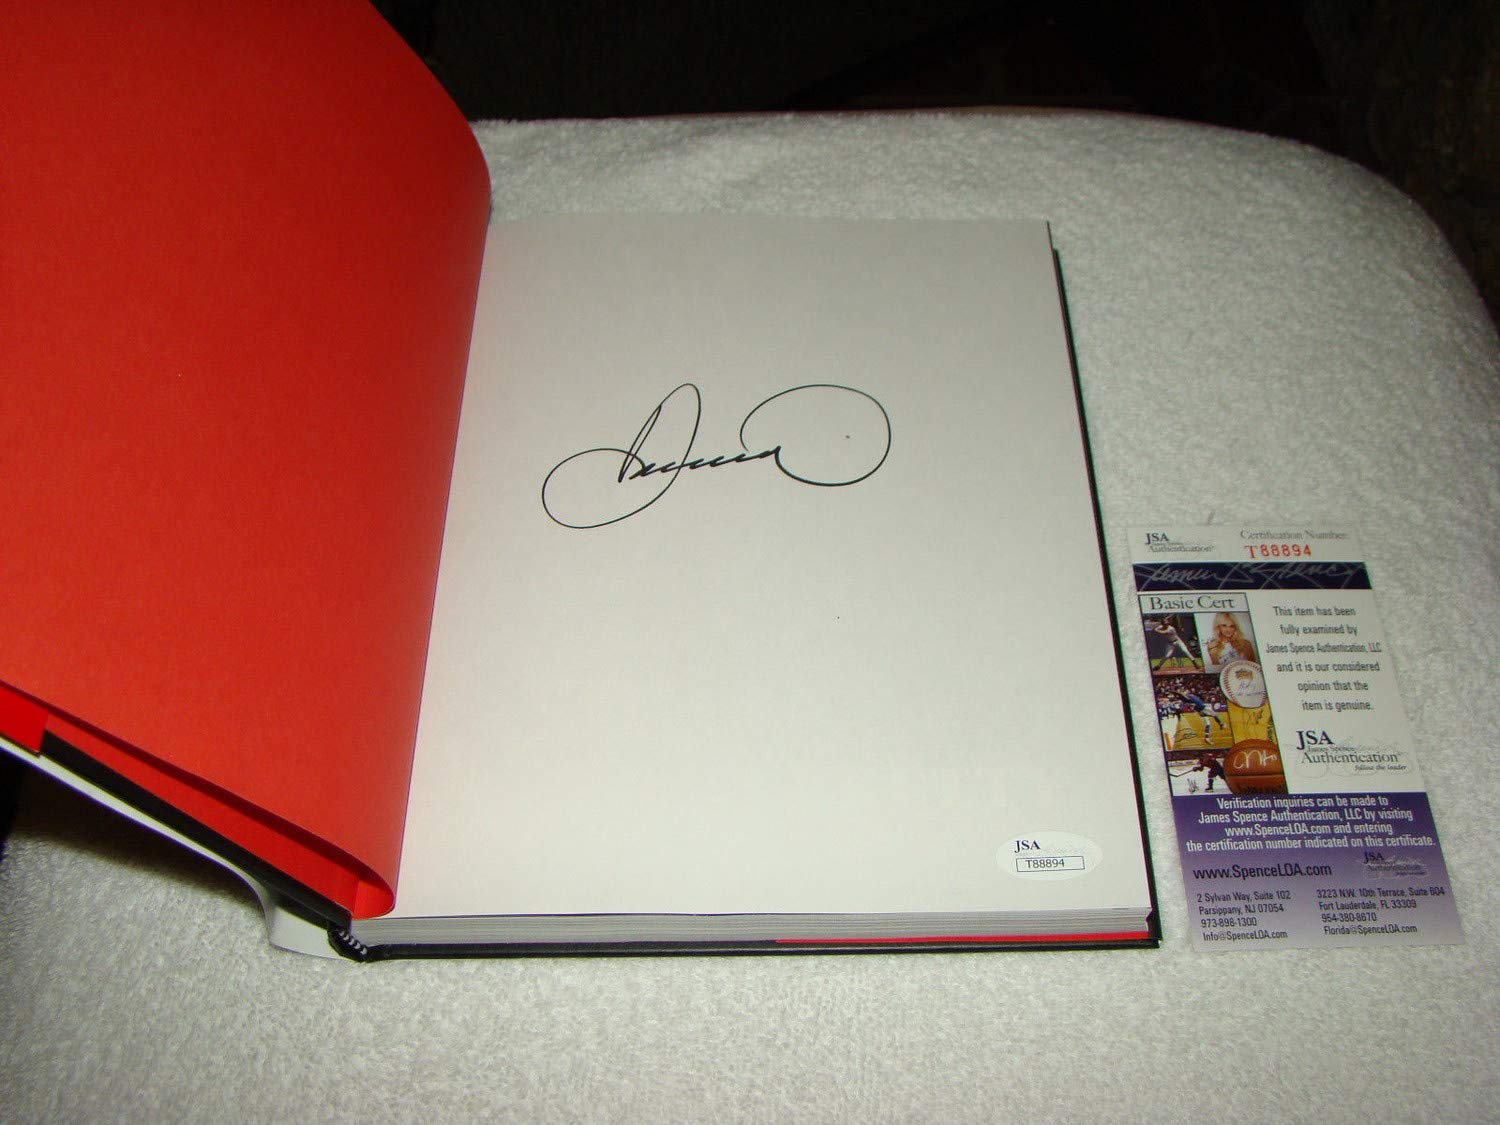 Danica Patrick Autographed Signed 1St Edition Hardback Book Pretty Intense JSA Authentic #T88894